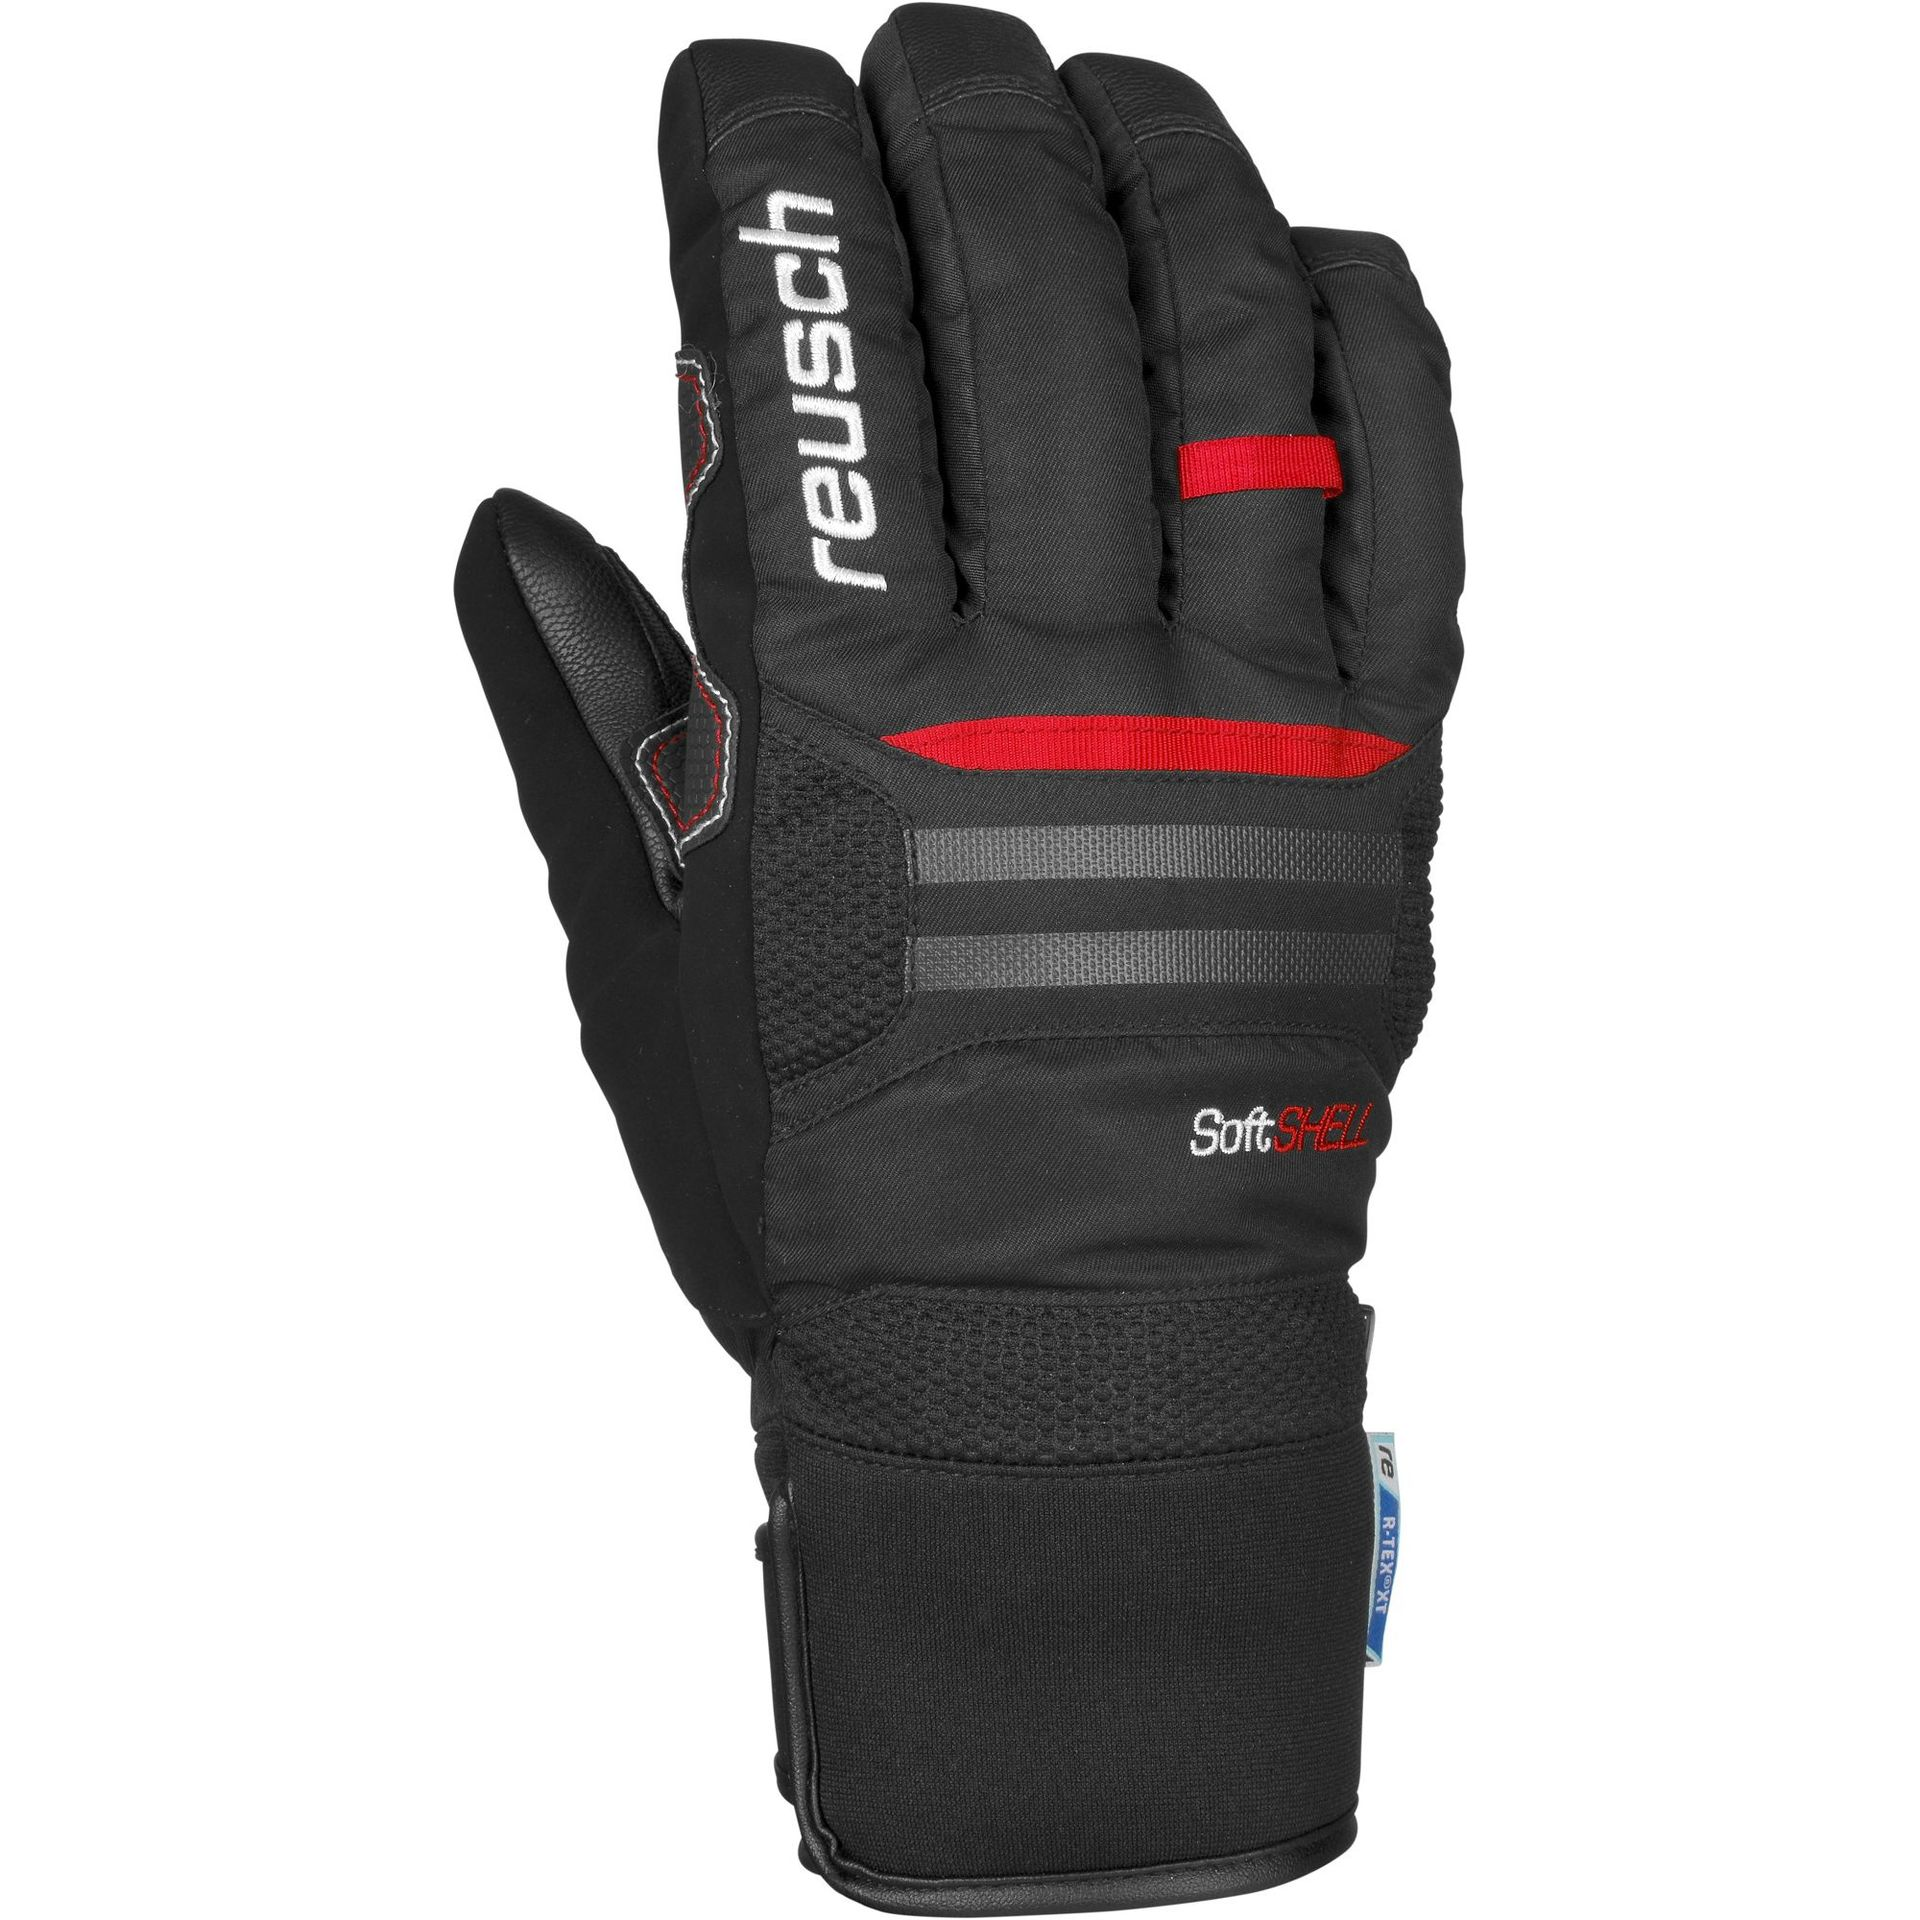 RĘKAWICE REUSCH X-RAIL R-TEX XT 705 BLACK FIRE RED